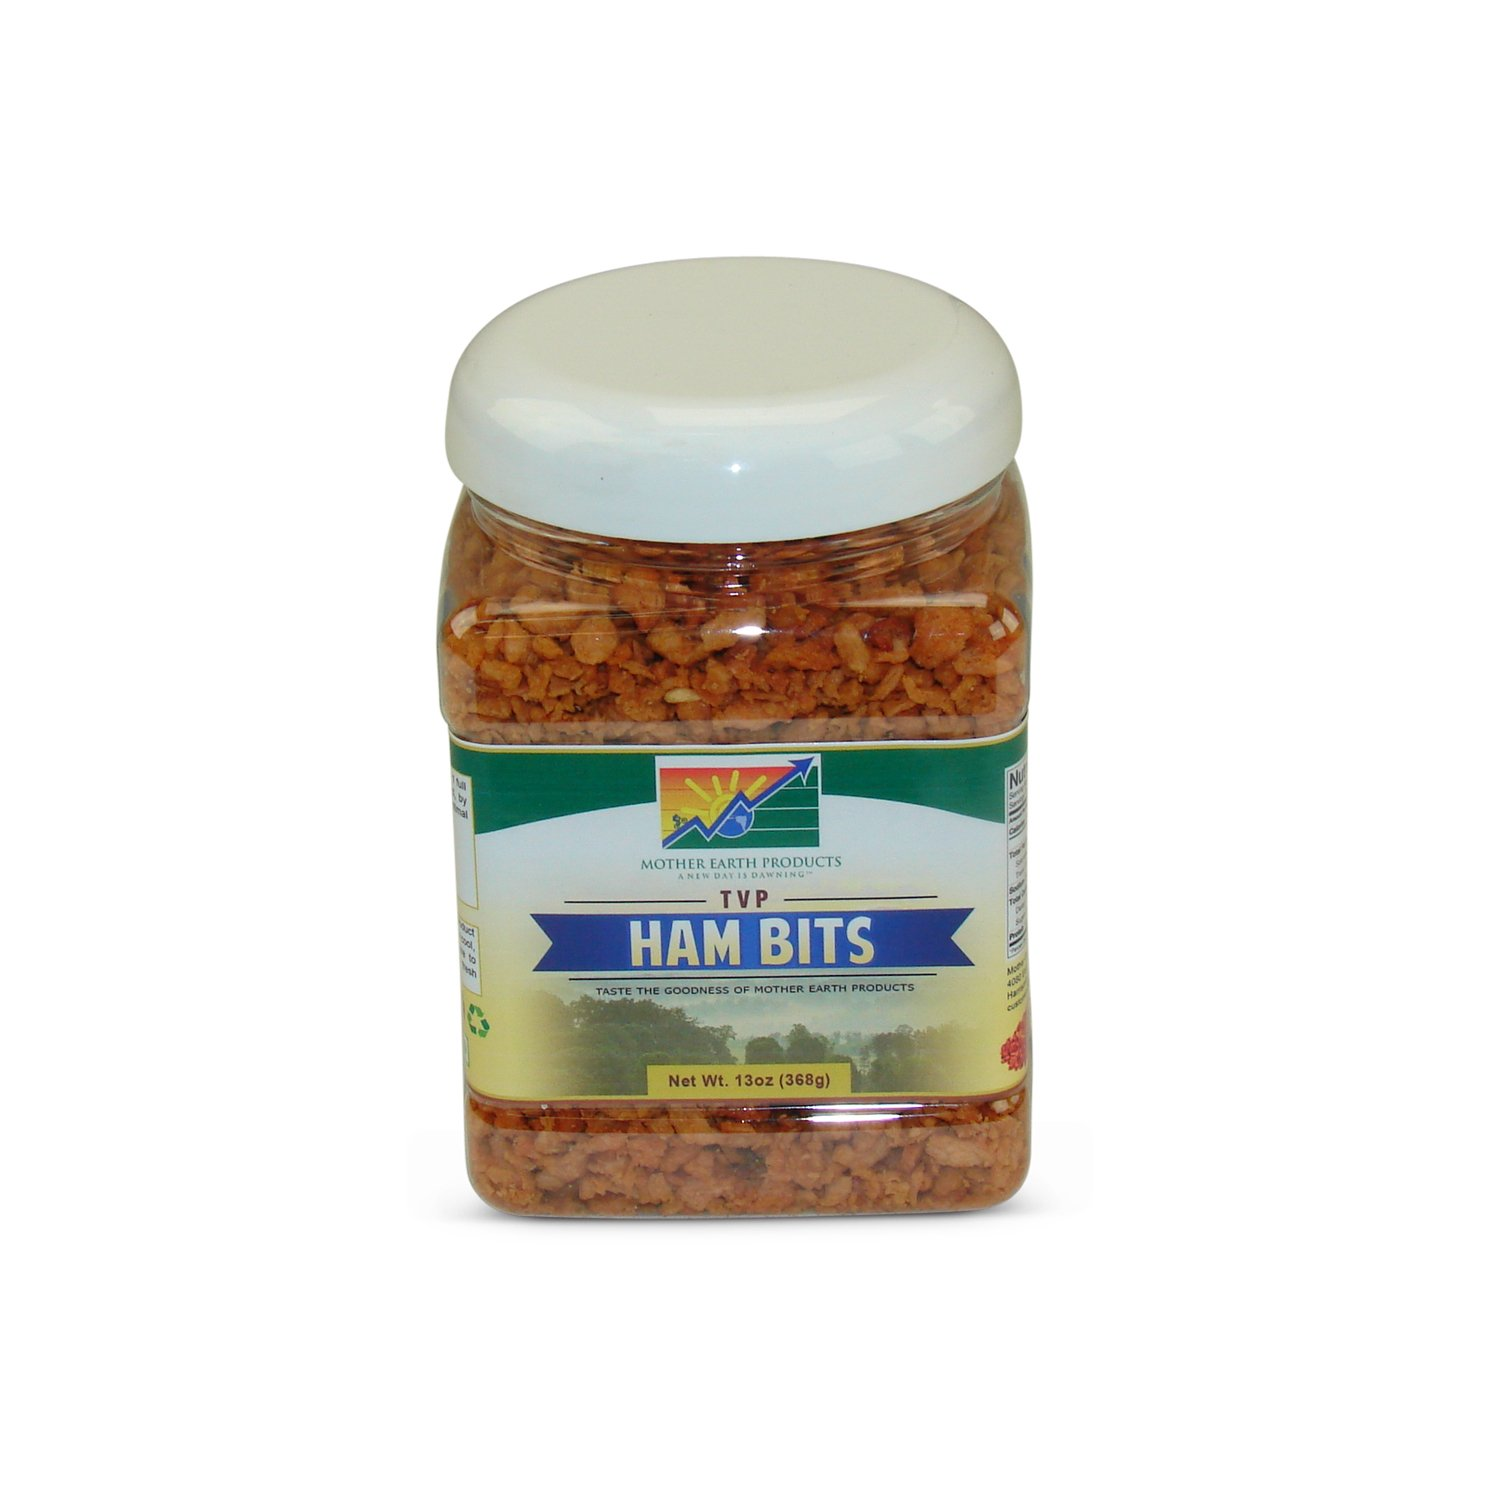 Mother Earth Products Textured Vegetable Protein Ham Chiplets, quart Jar, 13 Ounce (Pack of 1)